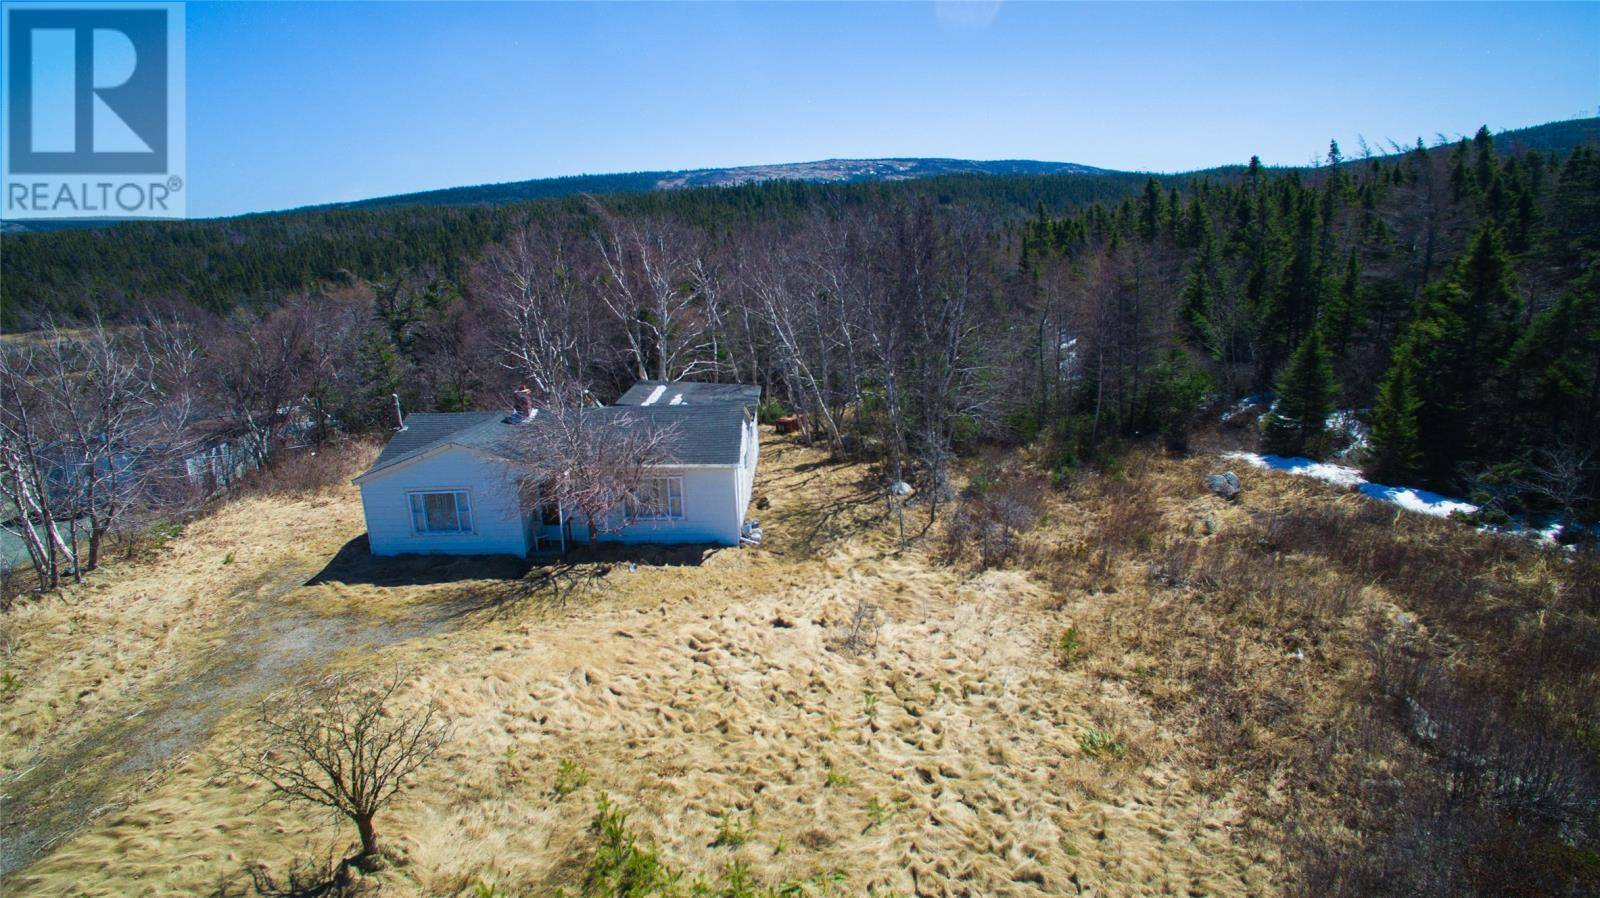 Residential property for sale at 1637 Conception Bay Hy Conception Bay South Newfoundland - MLS: 1207709